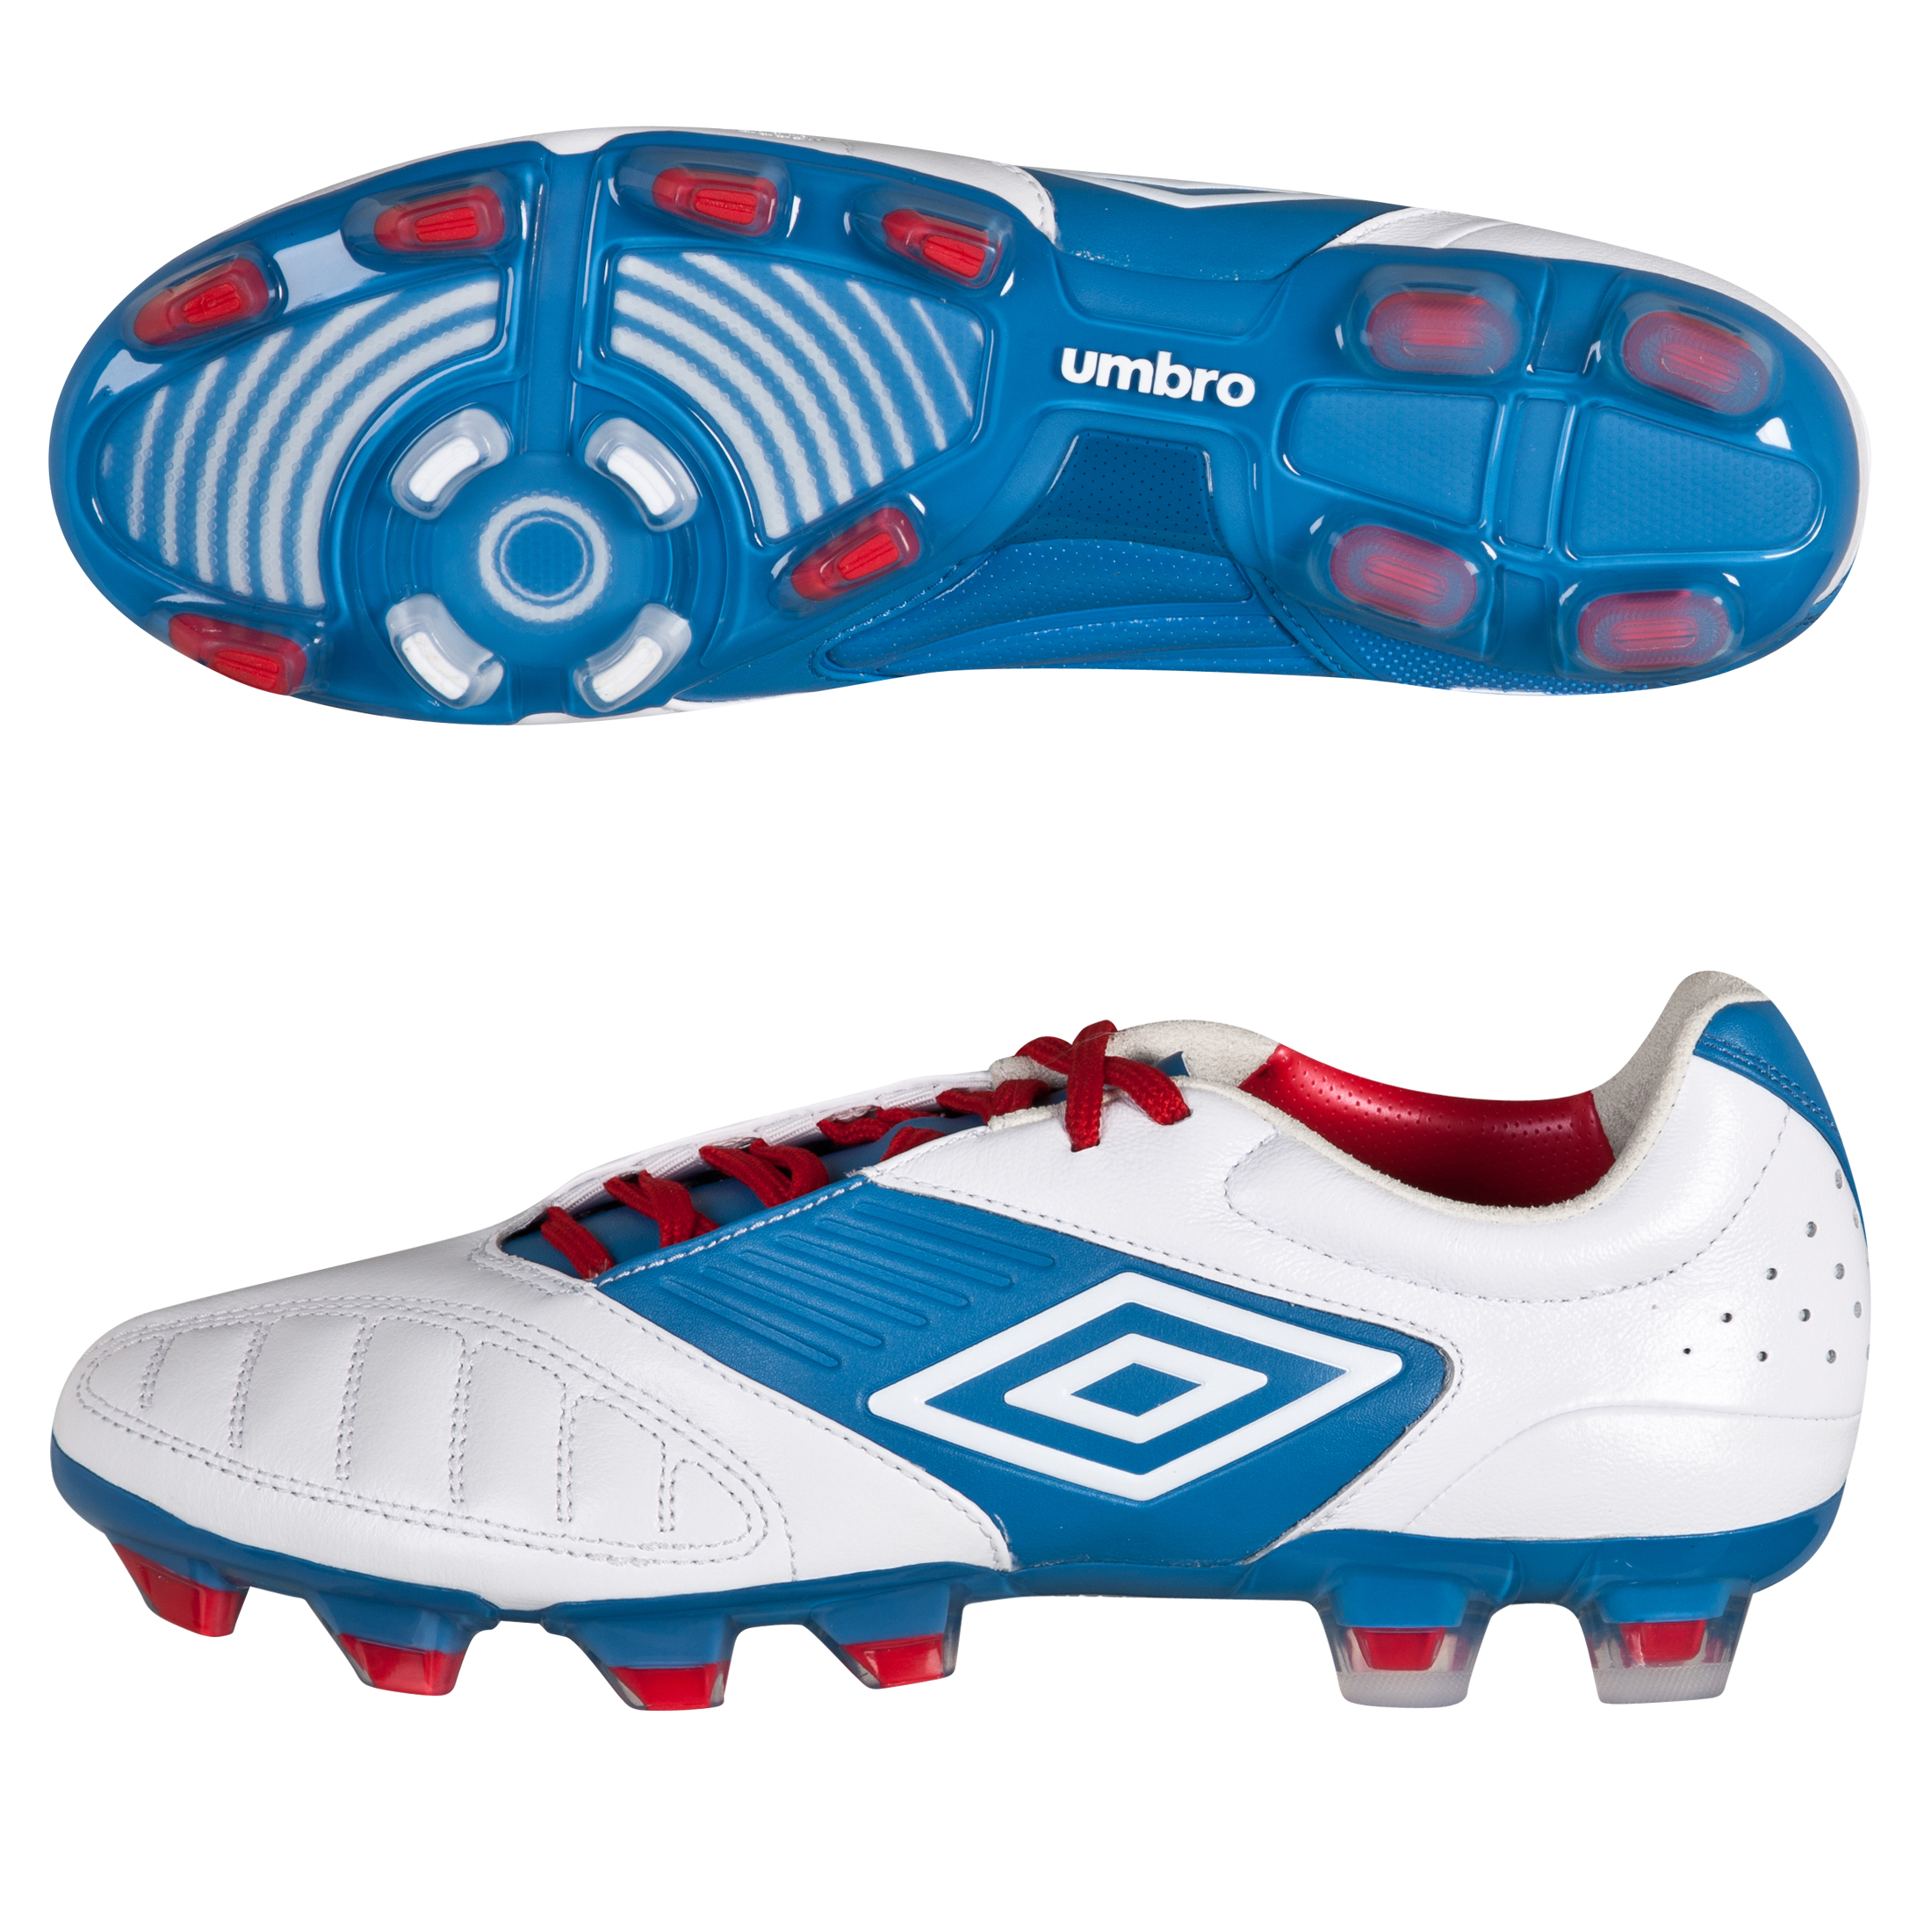 Umbro Geometra Pro Firm Ground White/Brilliant Blue/True Red